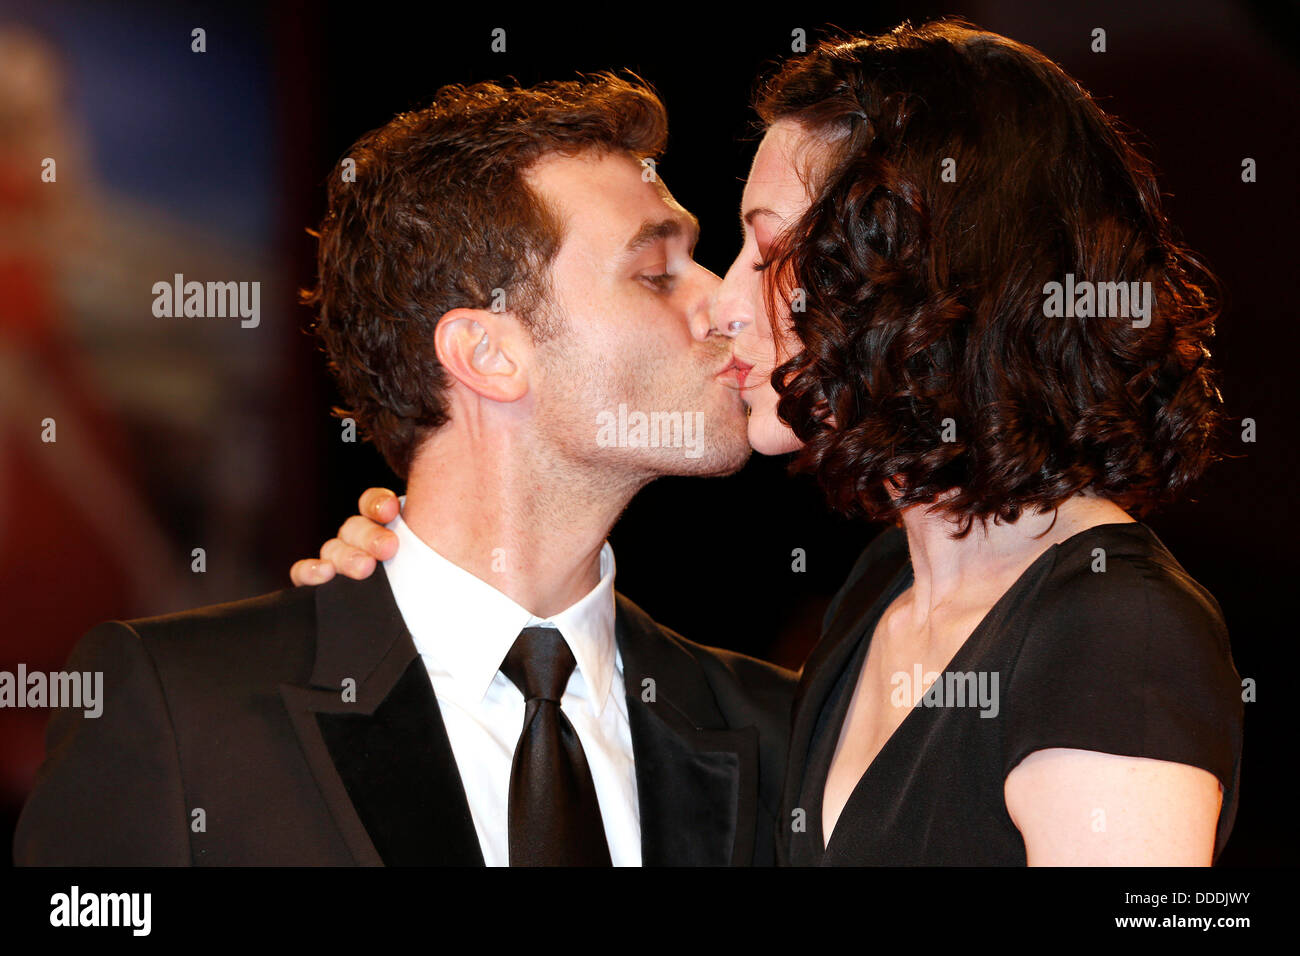 Think, that James deen and stoya seems